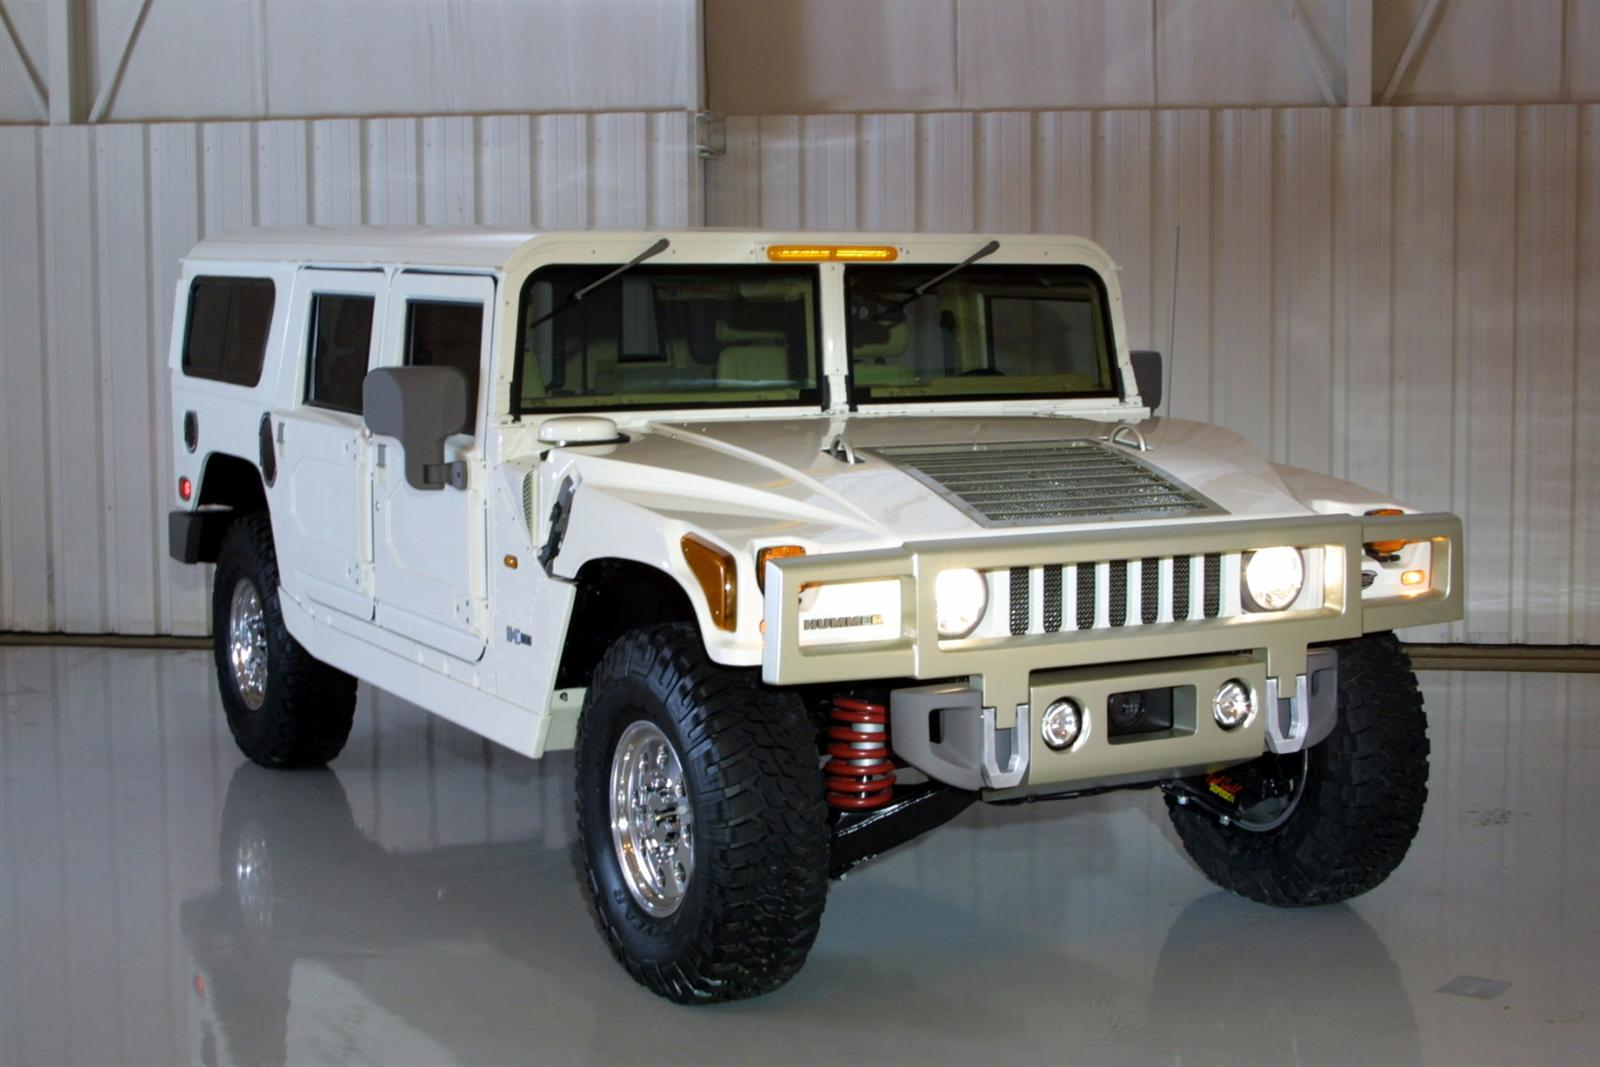 2002 hummer h1 information and photos zombiedrive 2002 hummer h1 9 hummer h1 9 vanachro Image collections